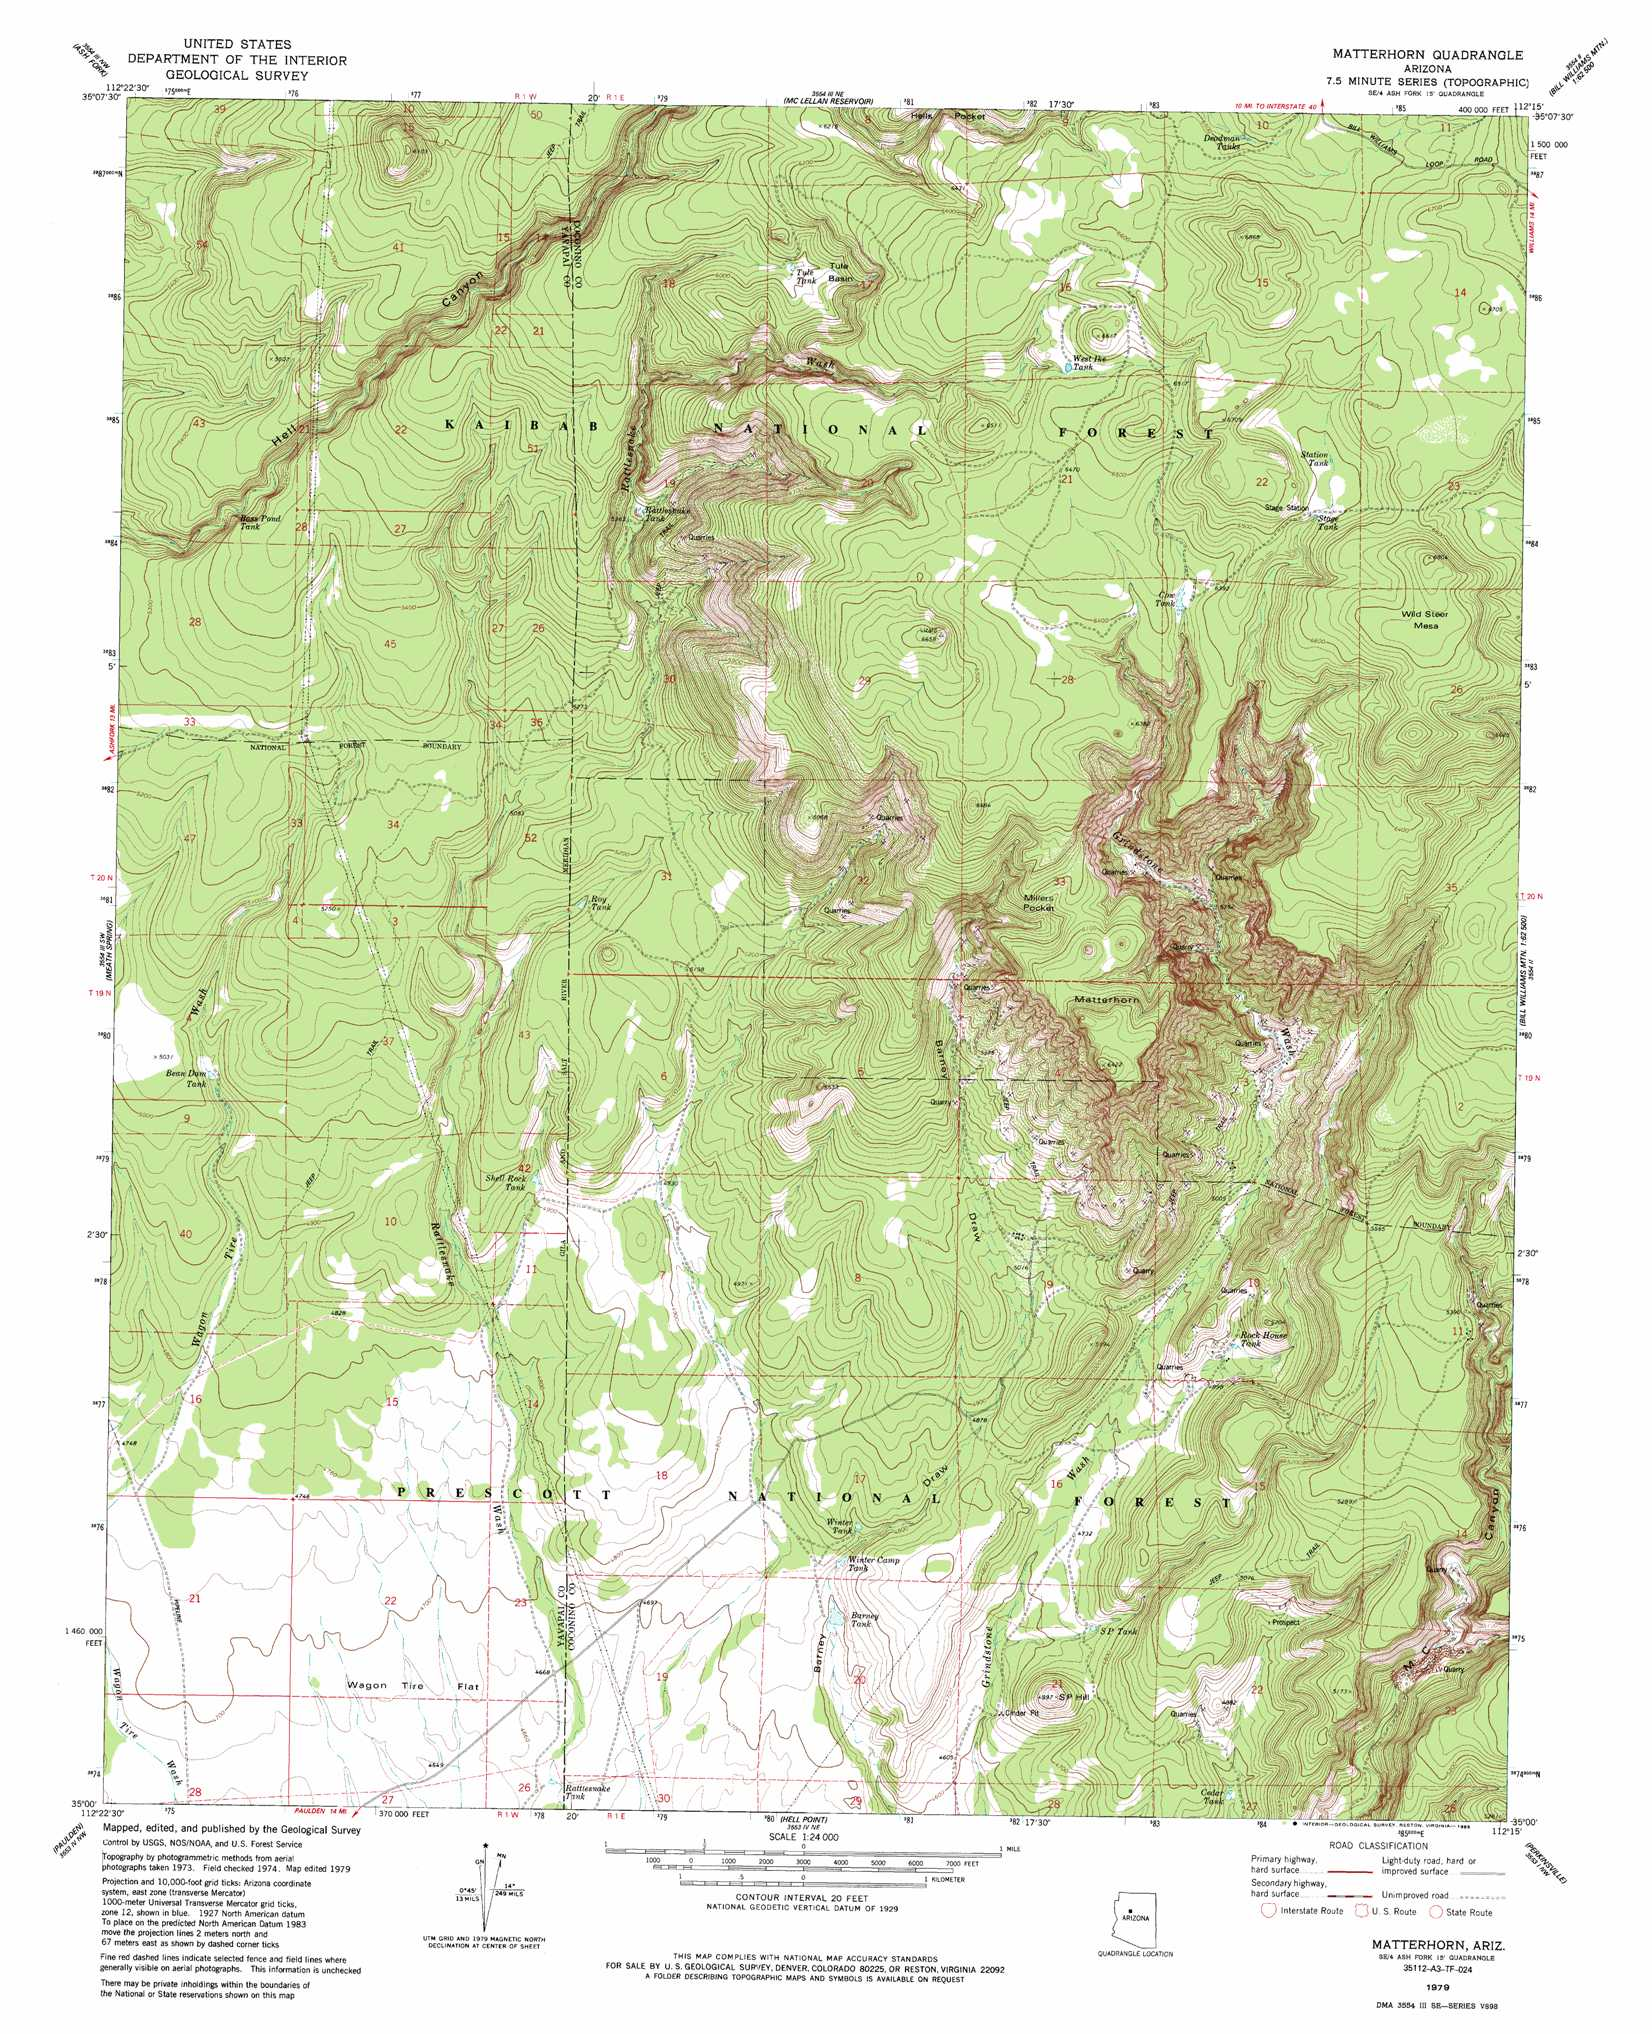 Arizona Topo Map Swimnovacom - Arizona topographic map